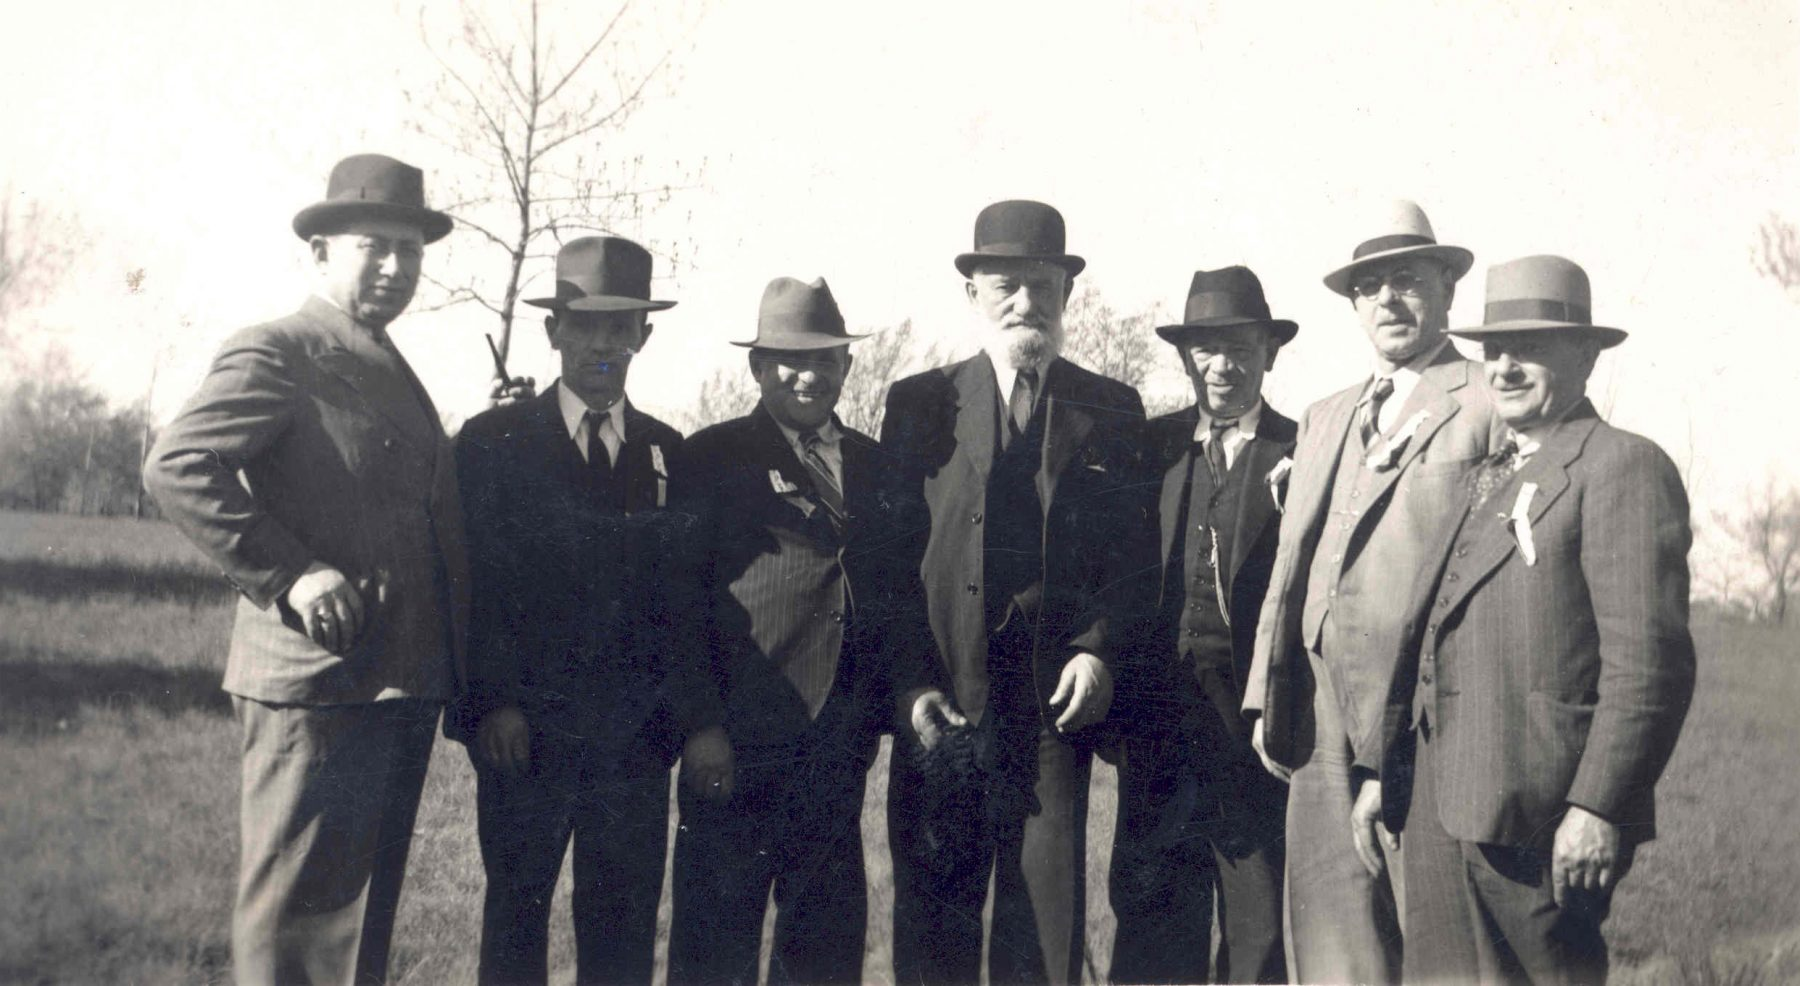 Members of the Kiever Shul in Toronto, ca. 1941. Individuals identified in the photograph are Harry Trachter, Fischel Cooper, and Israel Sakowick. Harry Trachter was the owner of Trachter's Milk Store, first located at 71 Kensington Avenue in 1925, and then just outside of the market at 800 Dundas Street West.   OJA, item 1437.